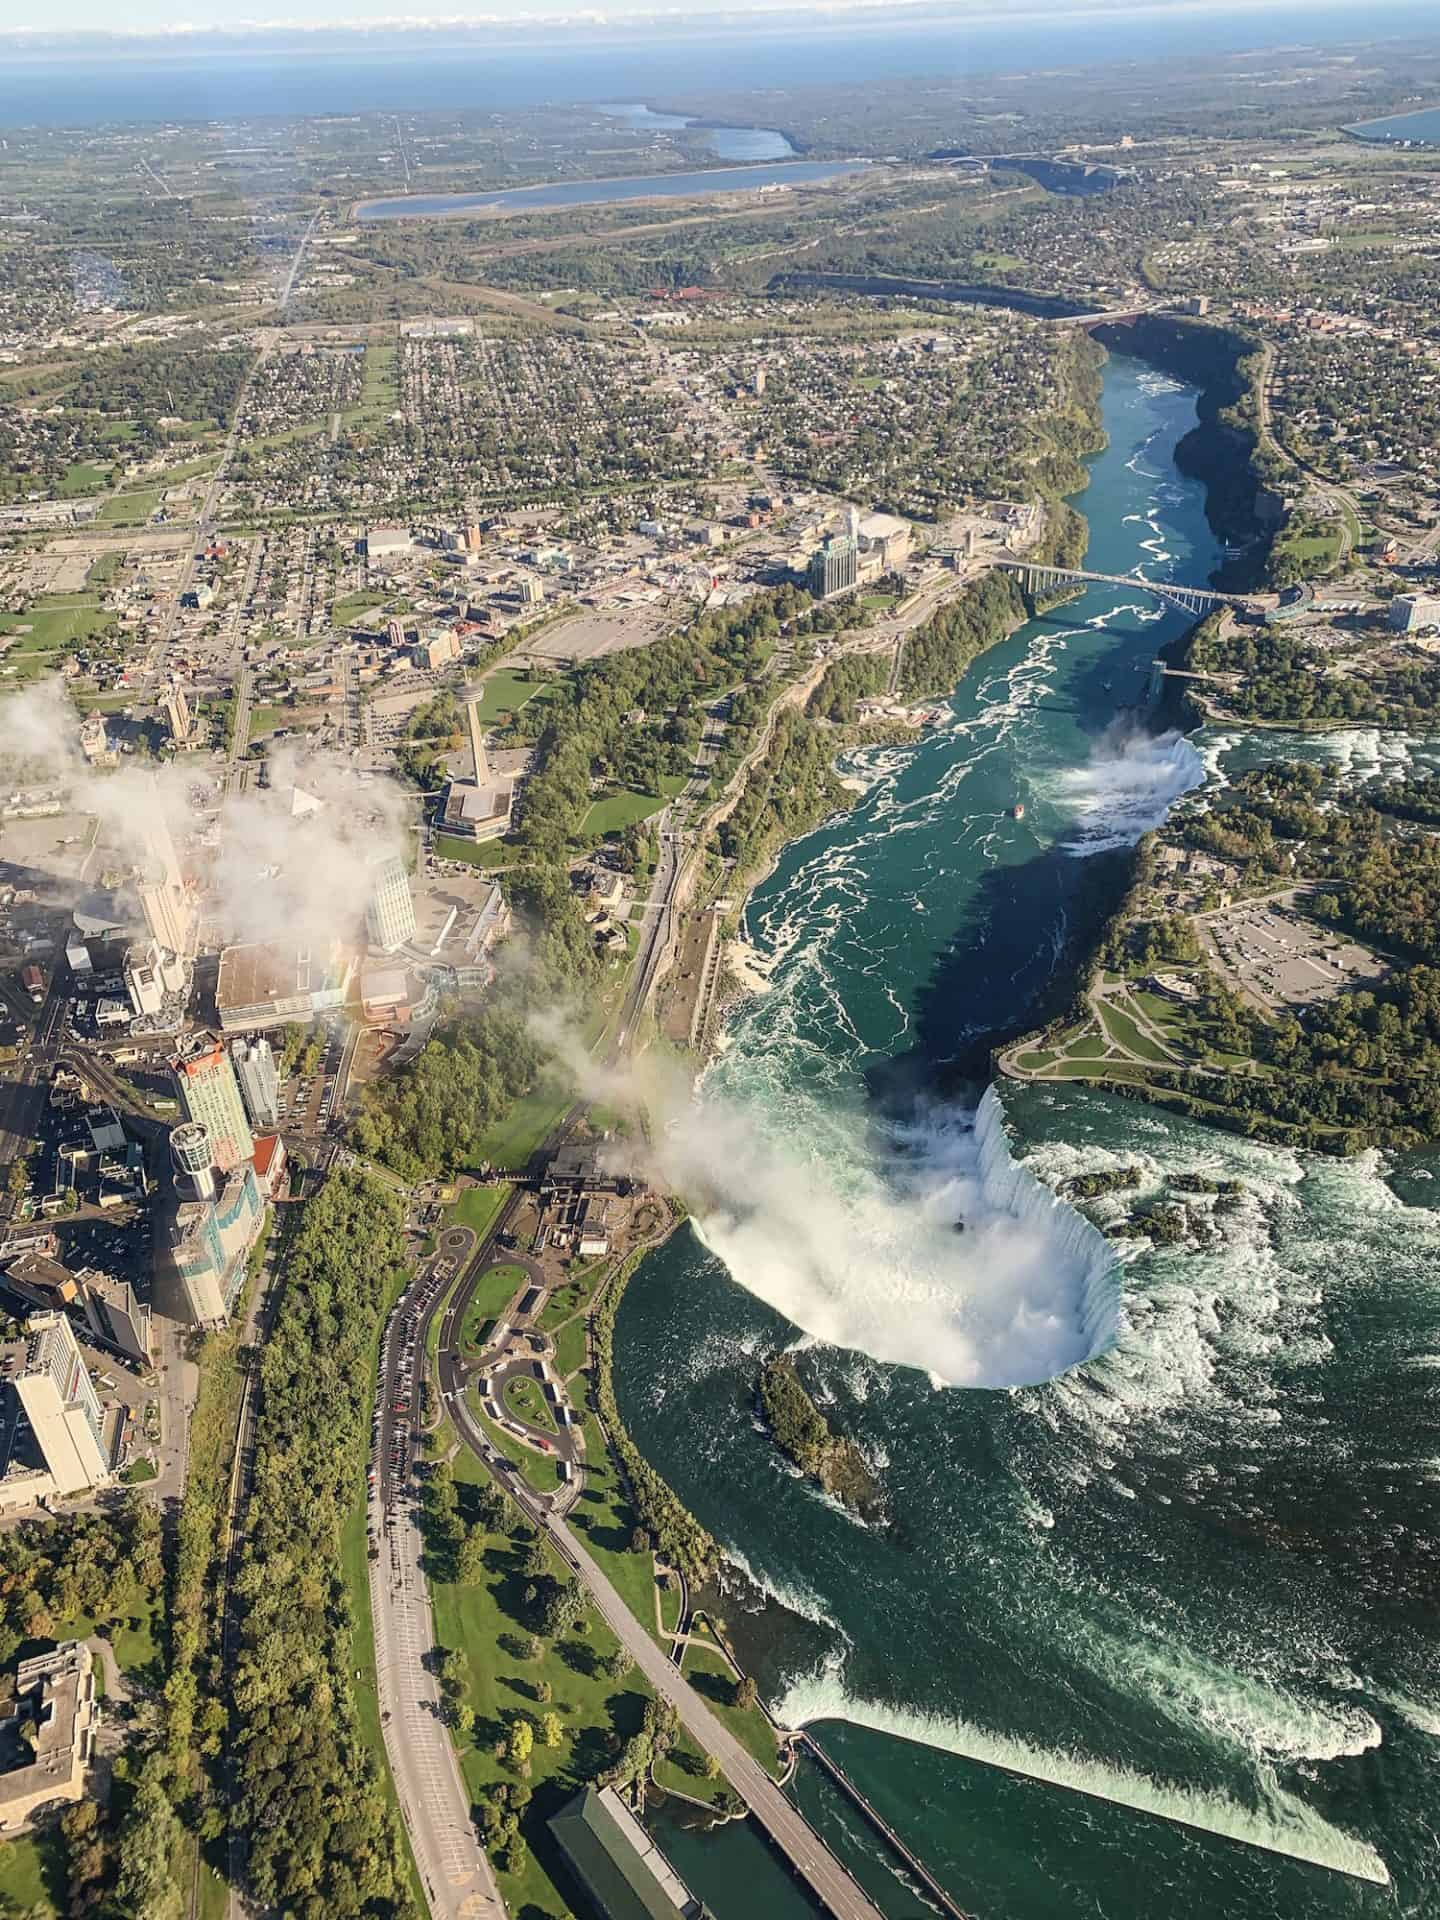 How to spend a weekend in Niagara Falls, Ontario | guide to a weekend getaway in Niagara Falls on the Canadian side | what to do around Horseshoe Falls in autumn | best things to do around Niagara Falls during the fall | Diary of a Toronto girl, a Canadian lifestyle blog